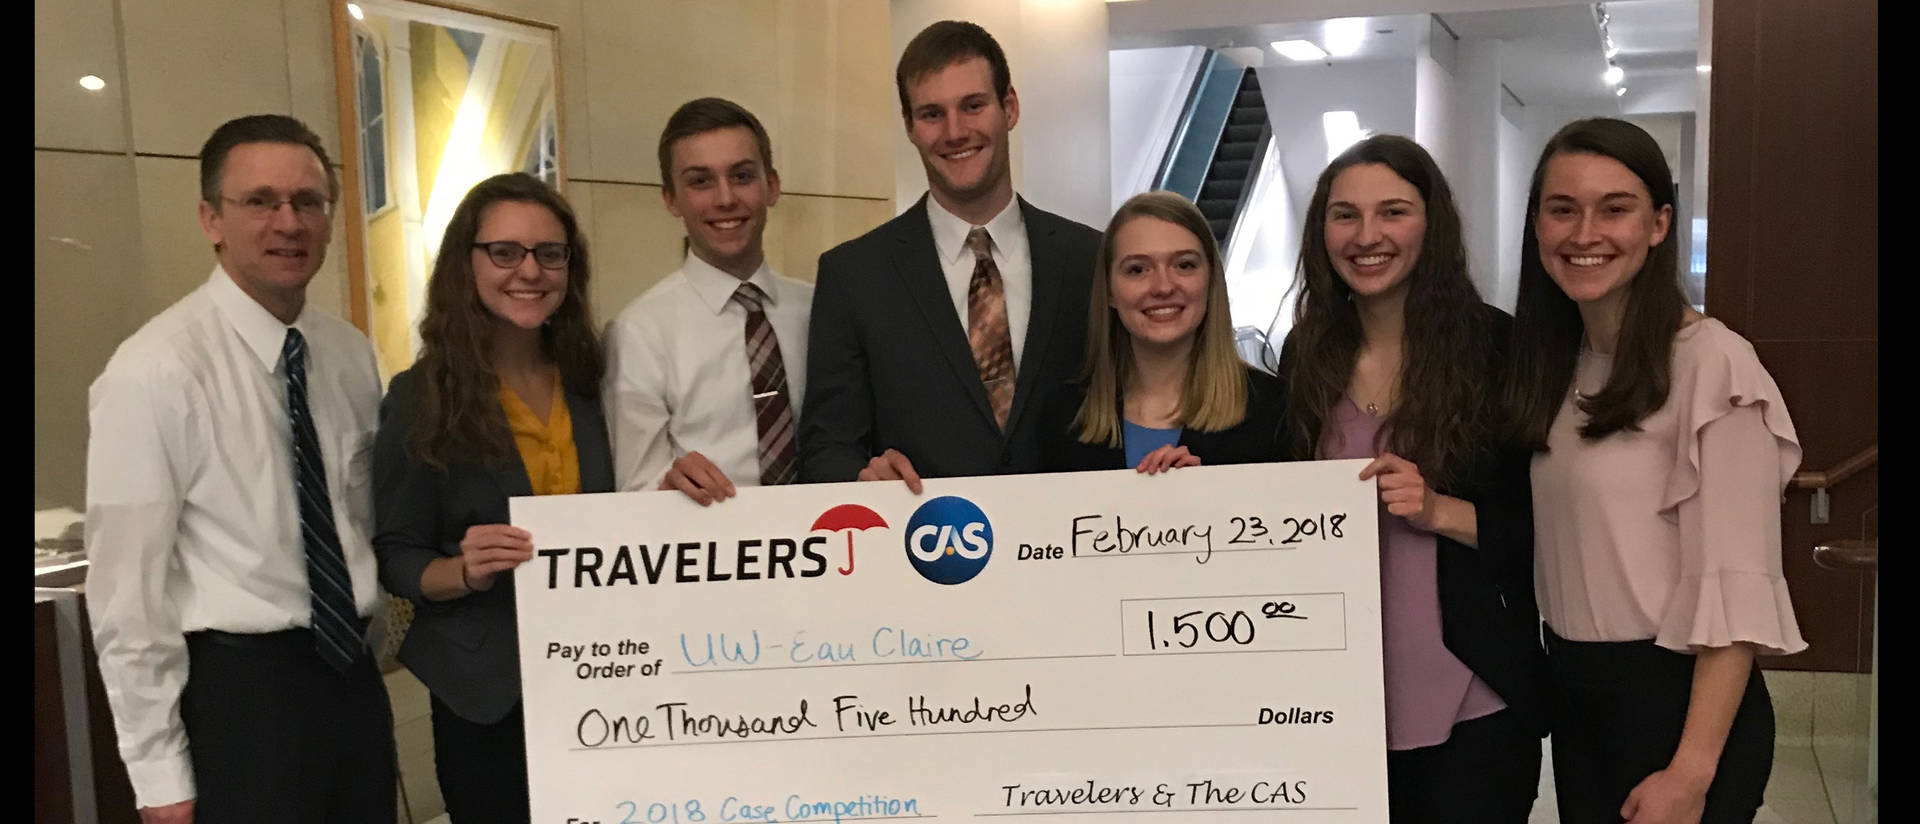 Travelers Case Competition2018